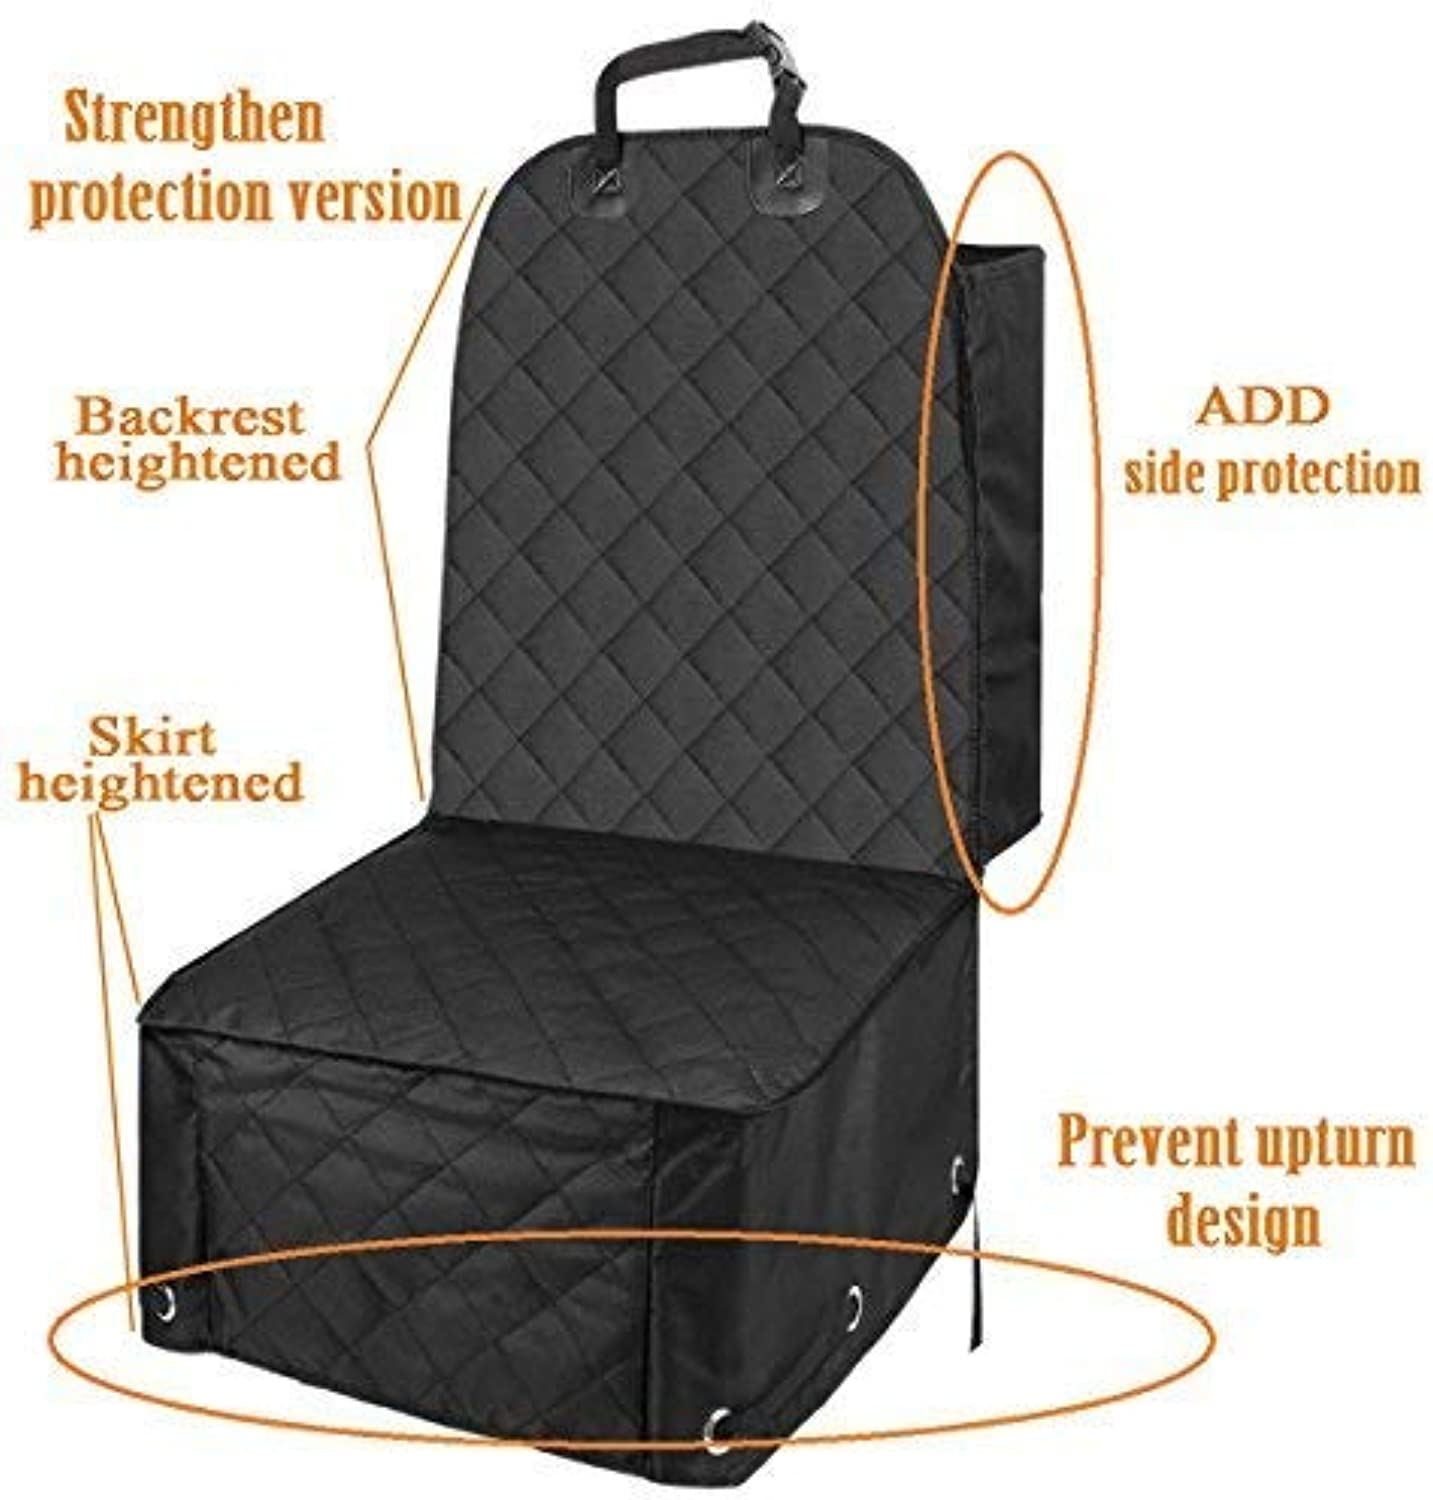 ALFHEIM Dog Bucket Seat Cover  Nonslip Rubber Backing with Anchors for Secure Fit  Universal Design for All Cars, Trucks & SUVs (Black) (Front Seat Cover Pro)